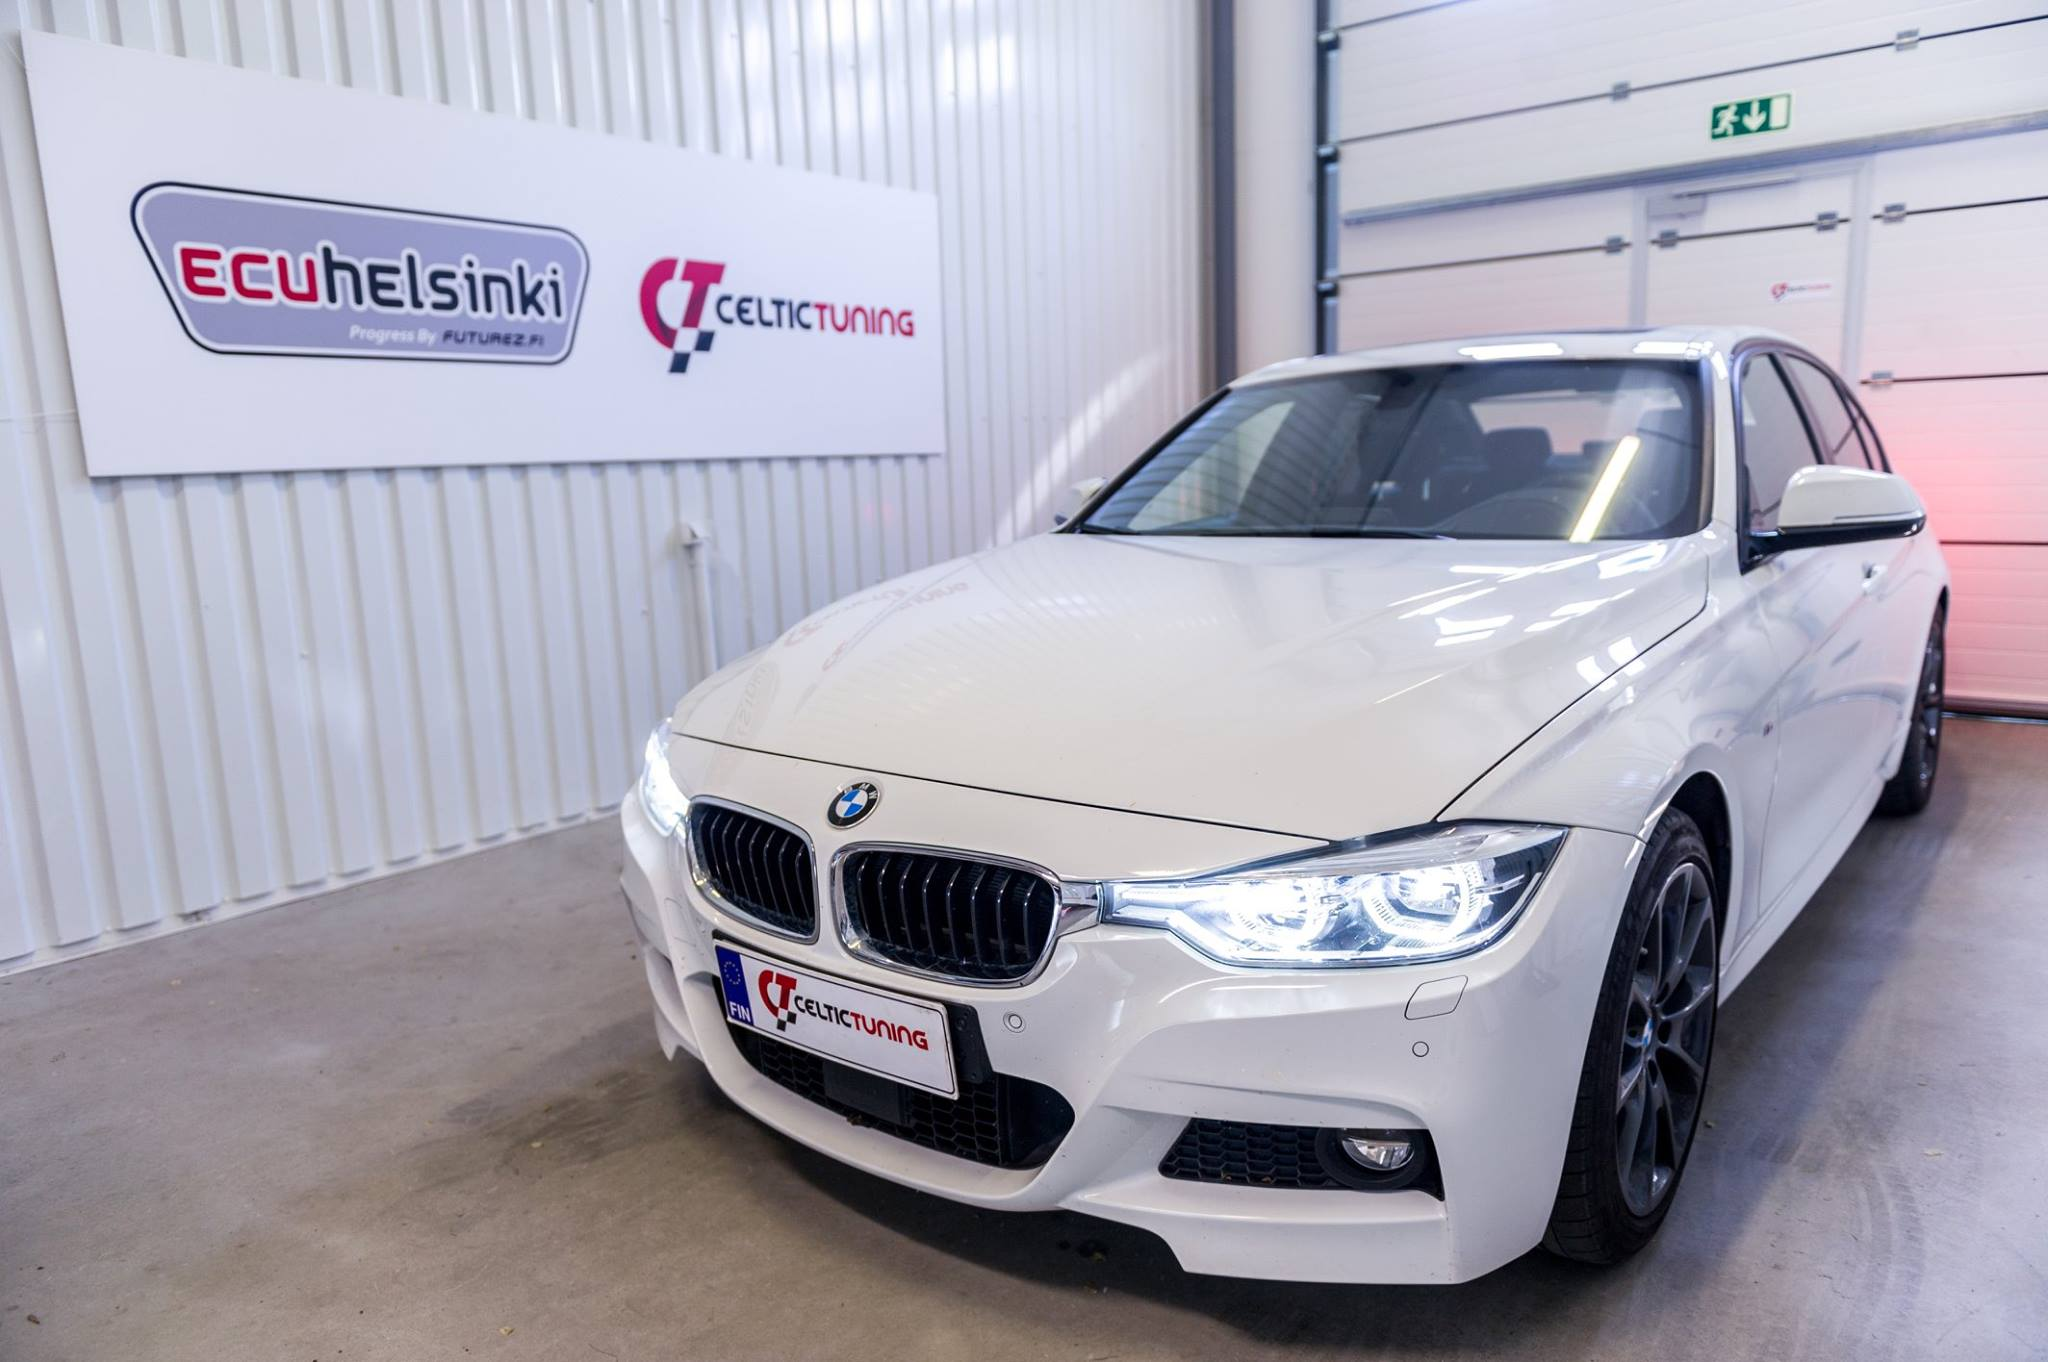 BMW 320i 2017 lastutus celtic tuning